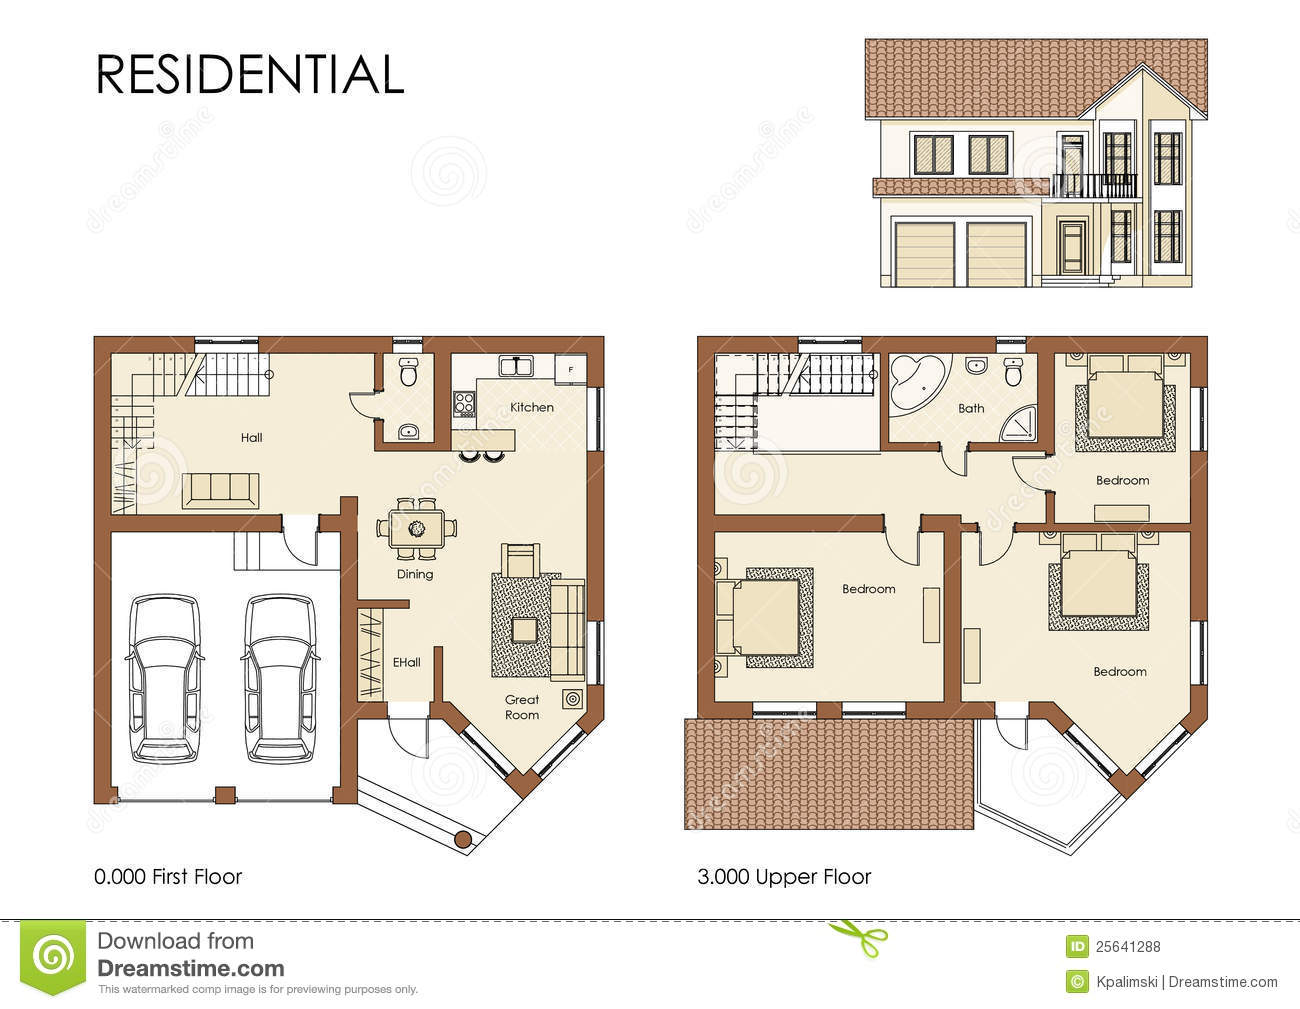 Residential house plan royalty free stock photos image for Raw house plan design